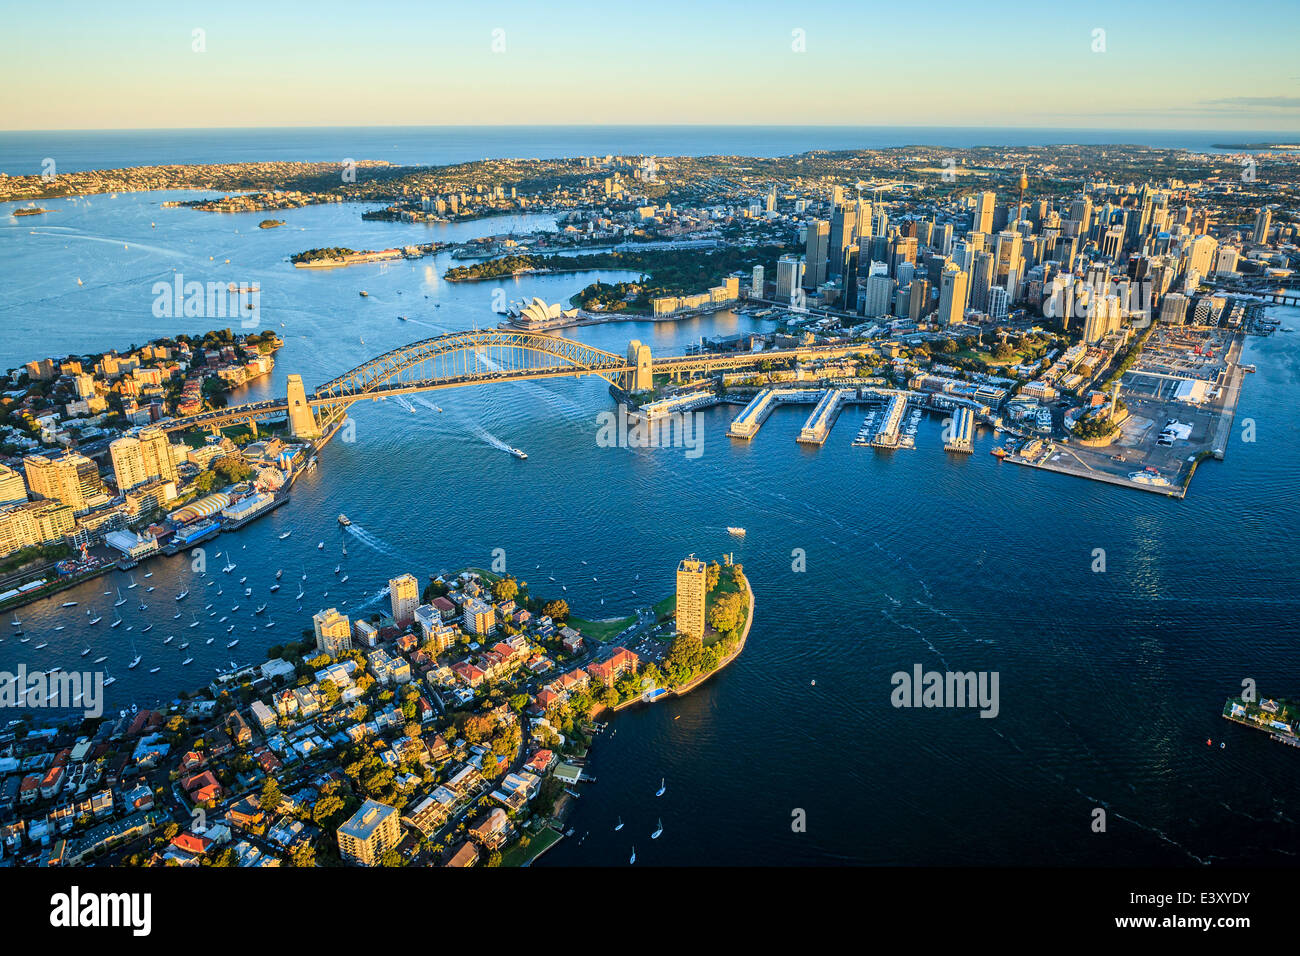 Vue aérienne de la ville de Sydney, Sydney, New South Wales, Australia Photo Stock